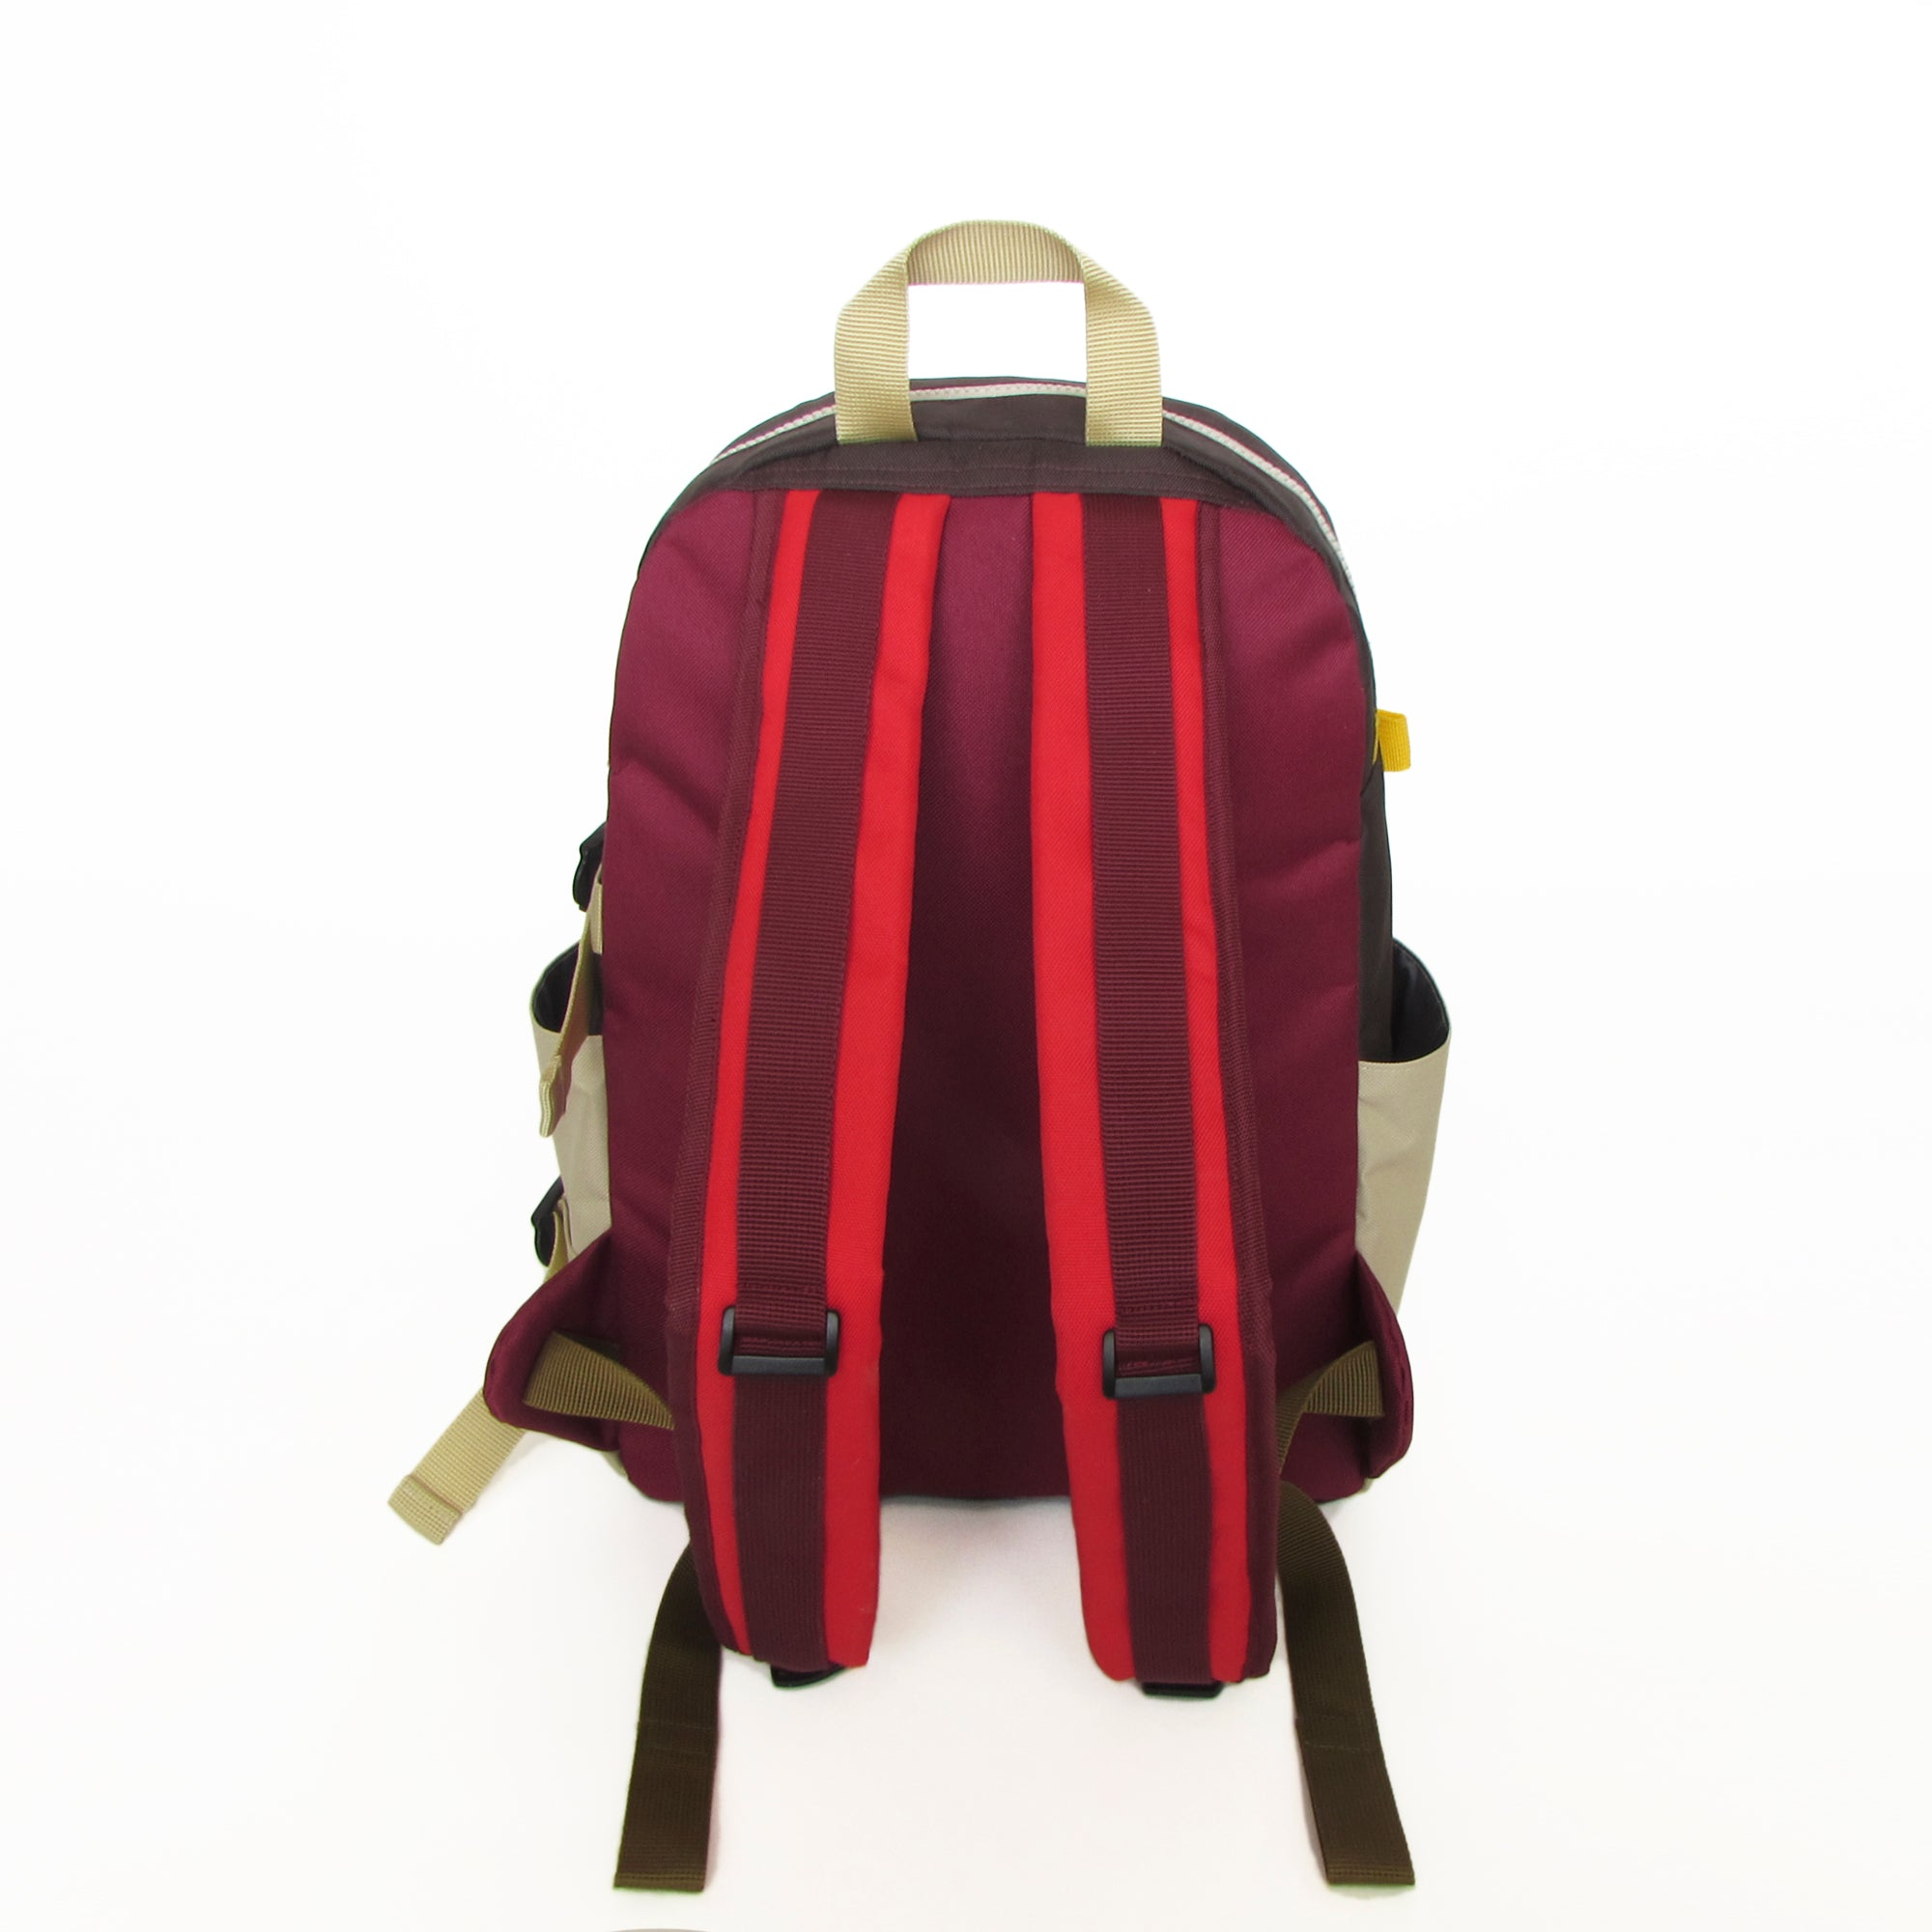 Hill top Backpack Brown / Ivory